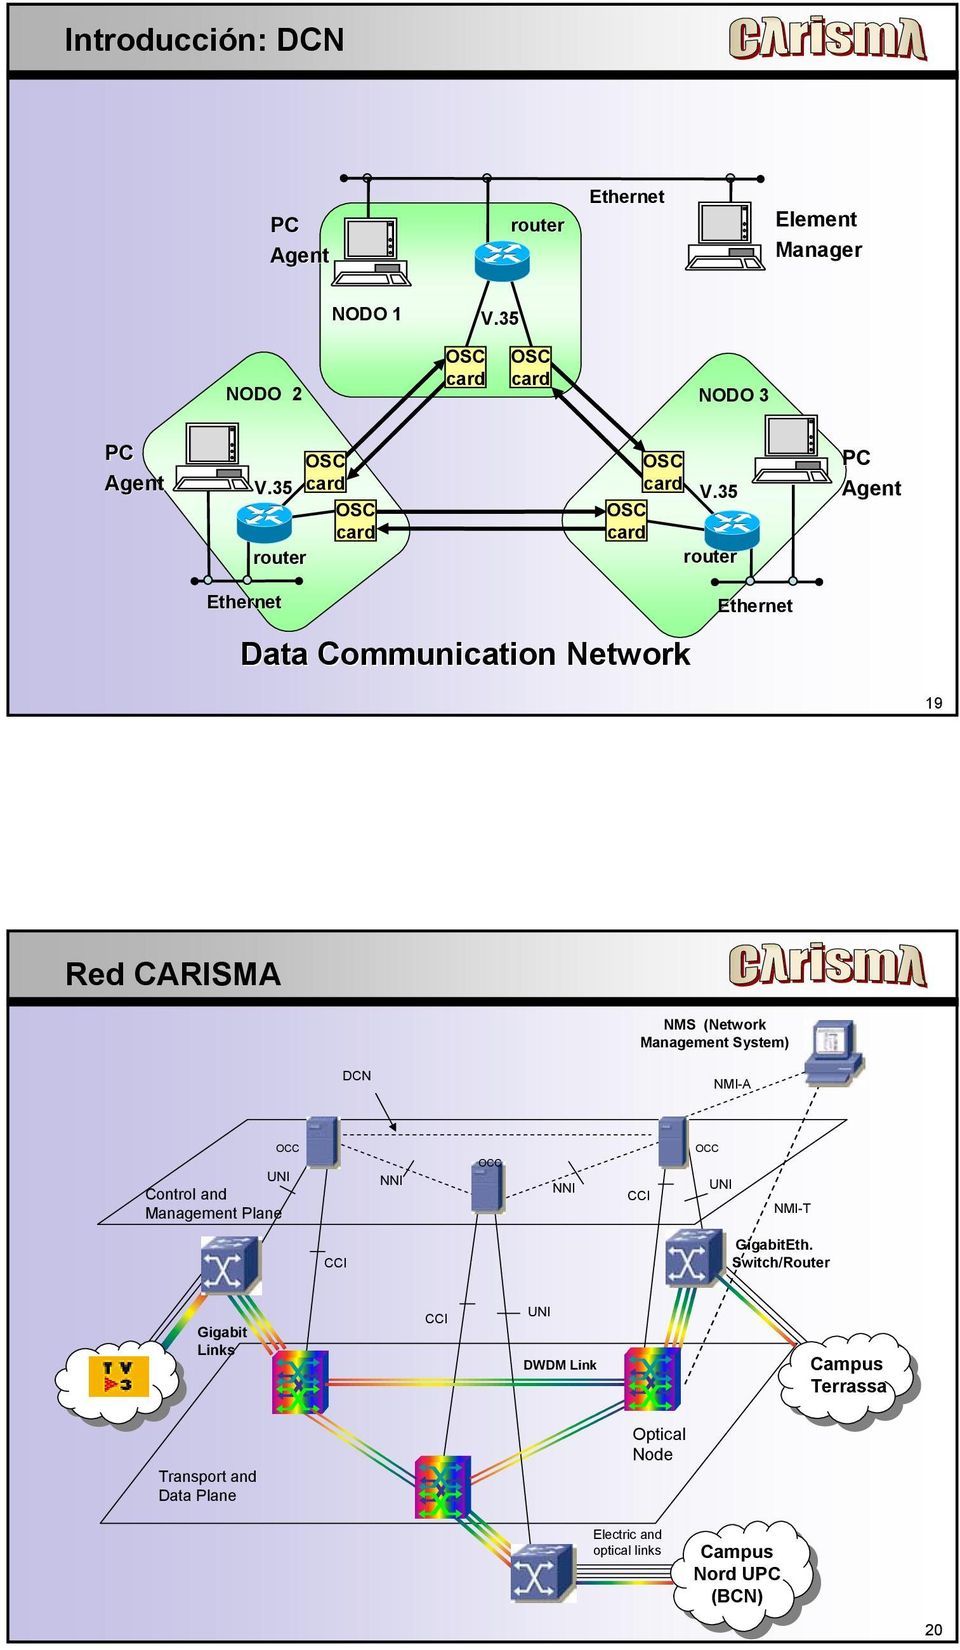 35 router PC Agent Ethernet Data Communication Network Ethernet 19 Red CARISMA NMS (Network Management System) DCN NMI-A OCC UNI